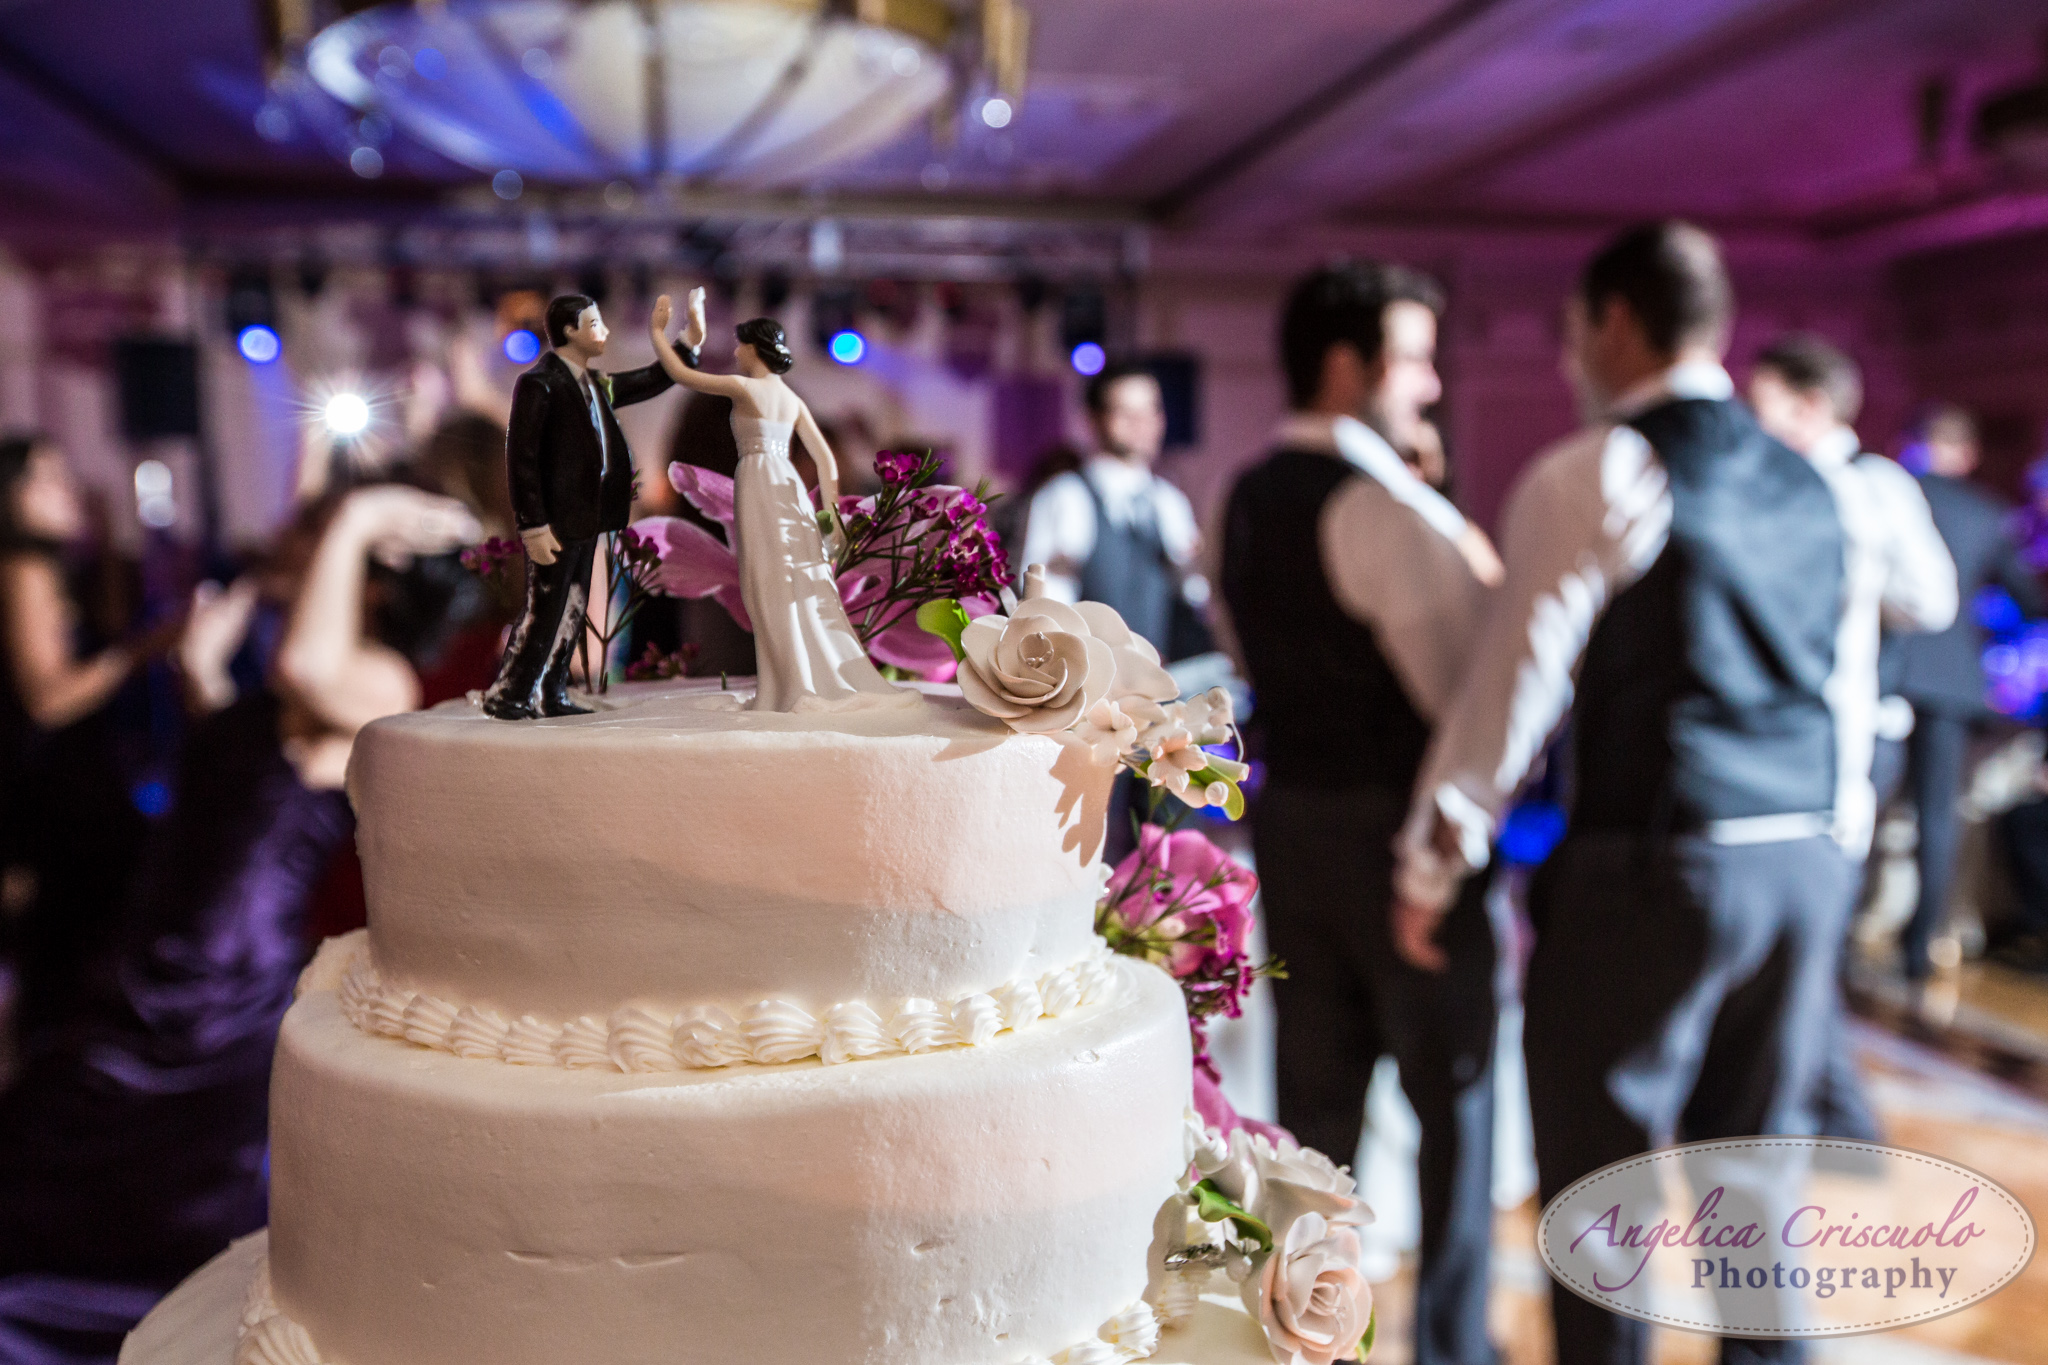 New York Wedding Photographer high-five cake topper ideas